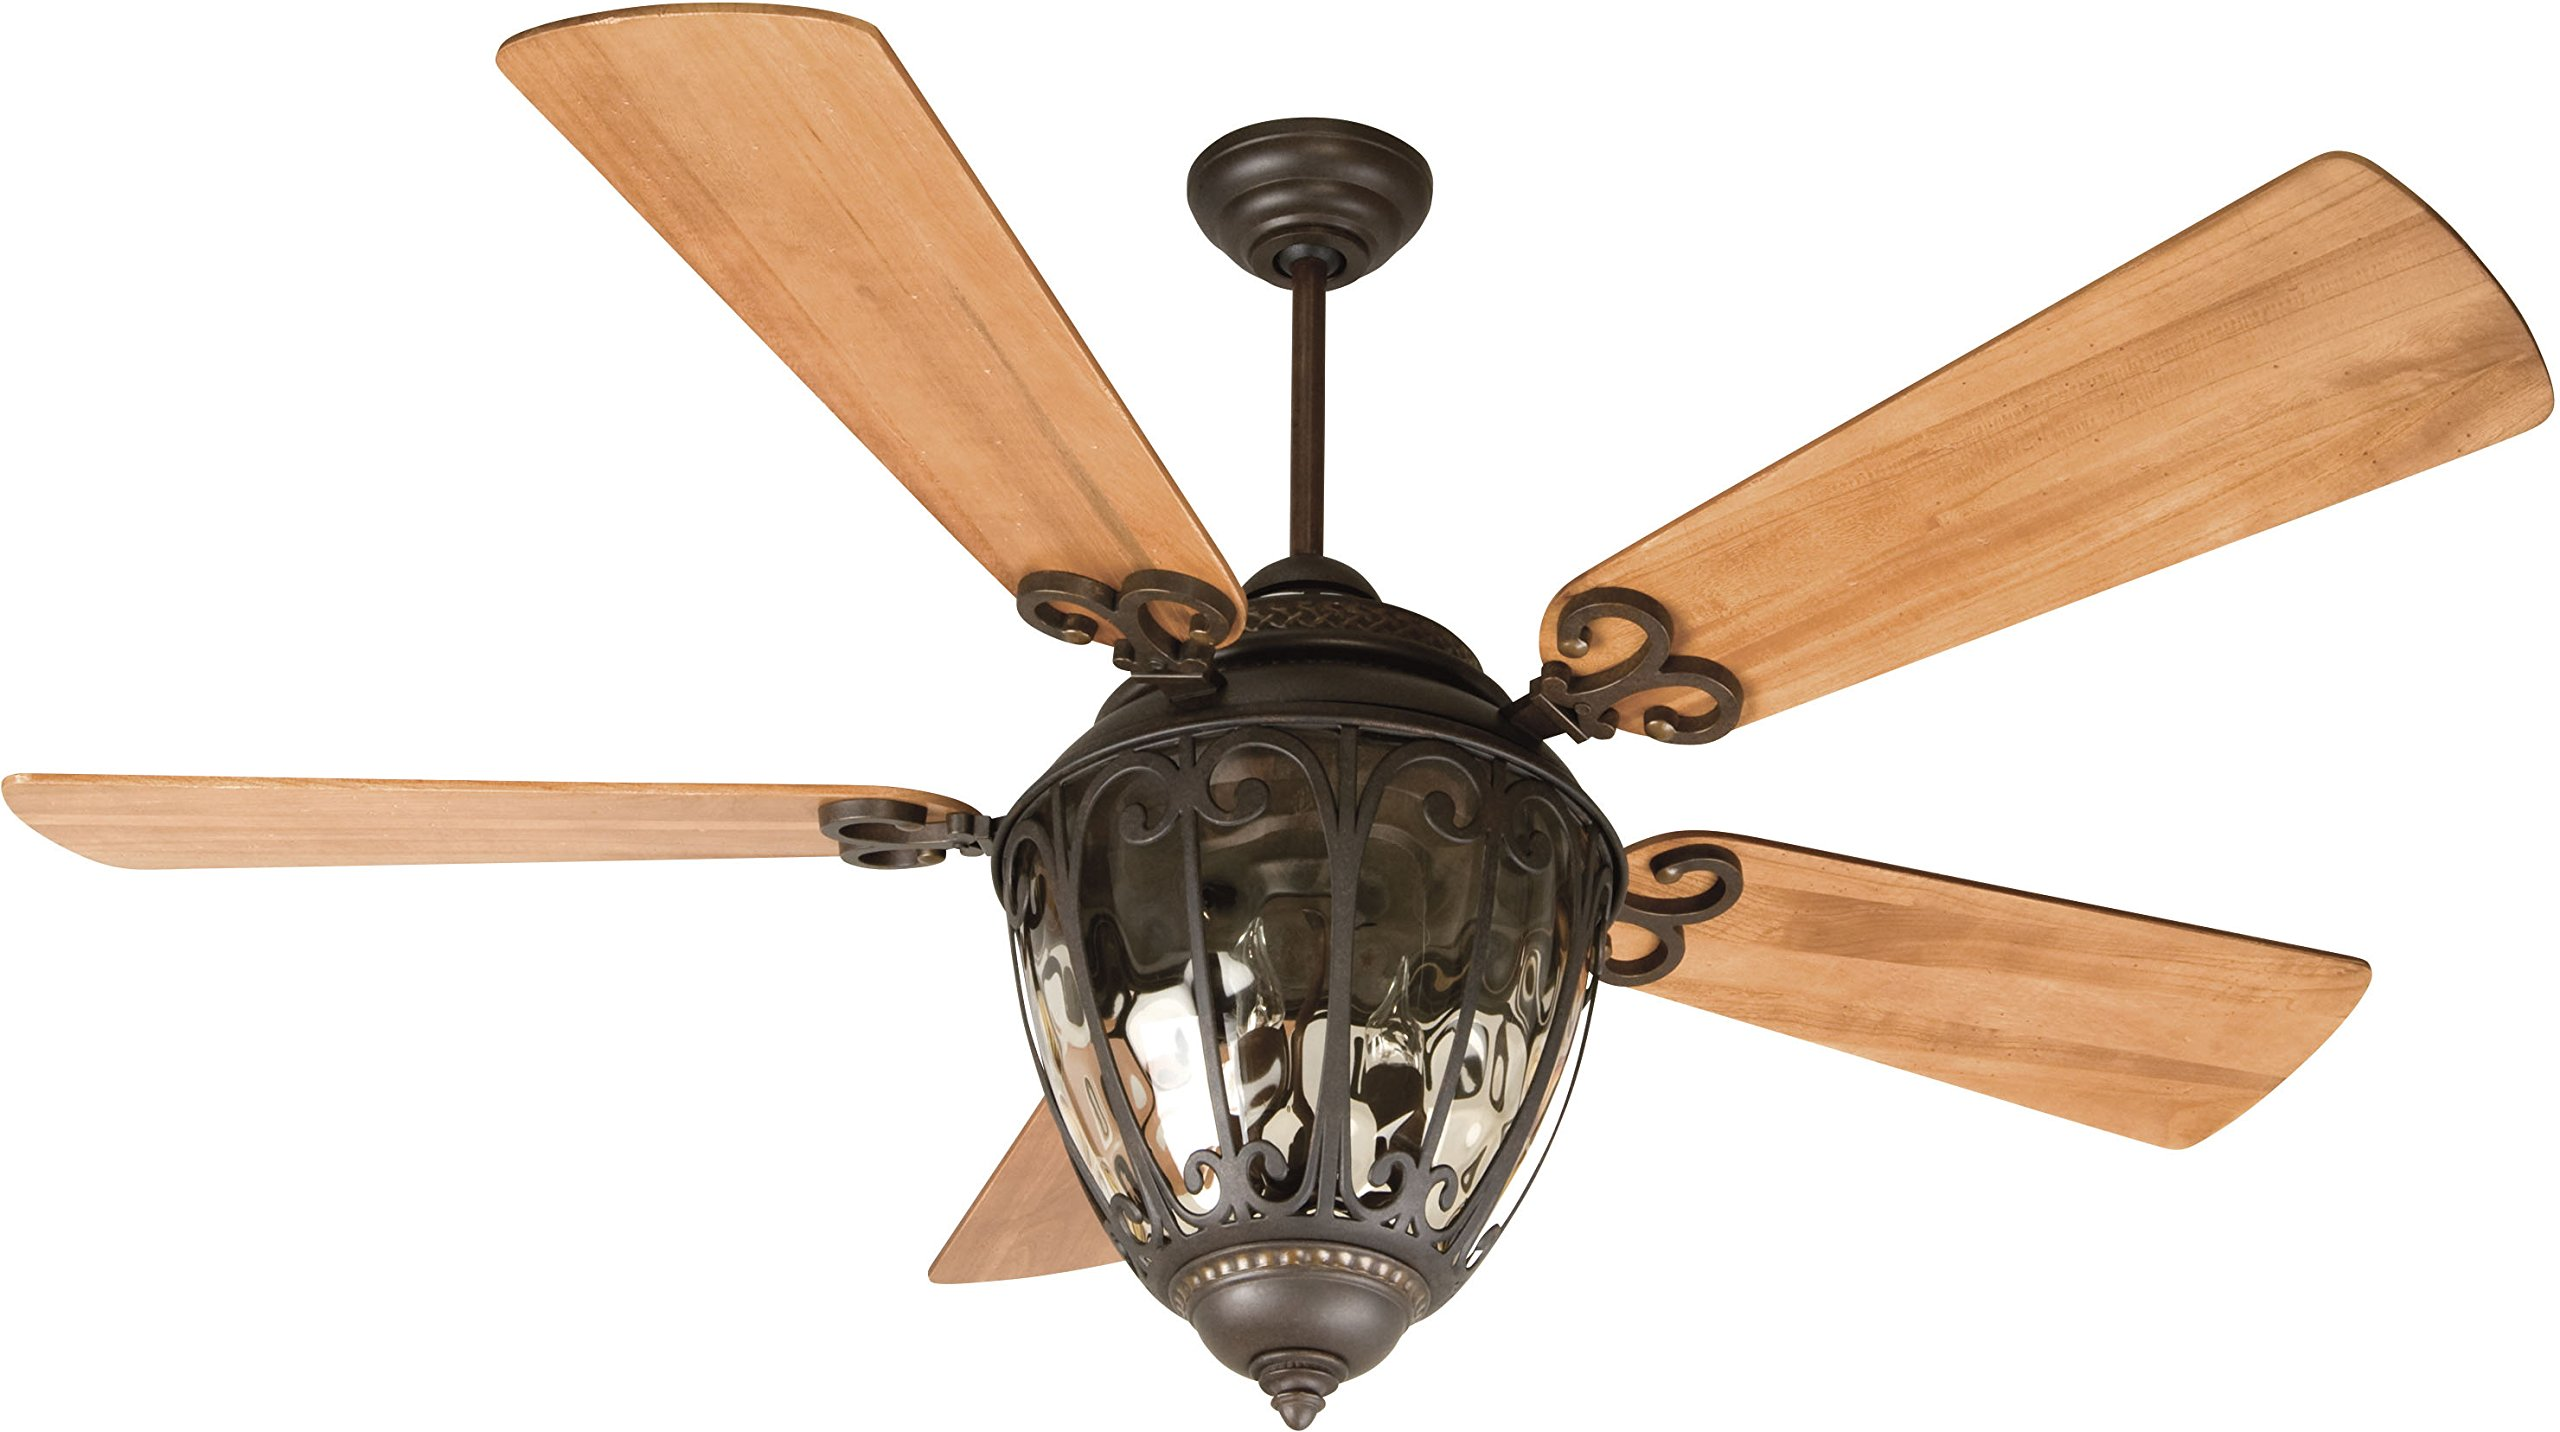 Craftmade K10731 Ceiling Fan Motor with Blades Included by Craftmade